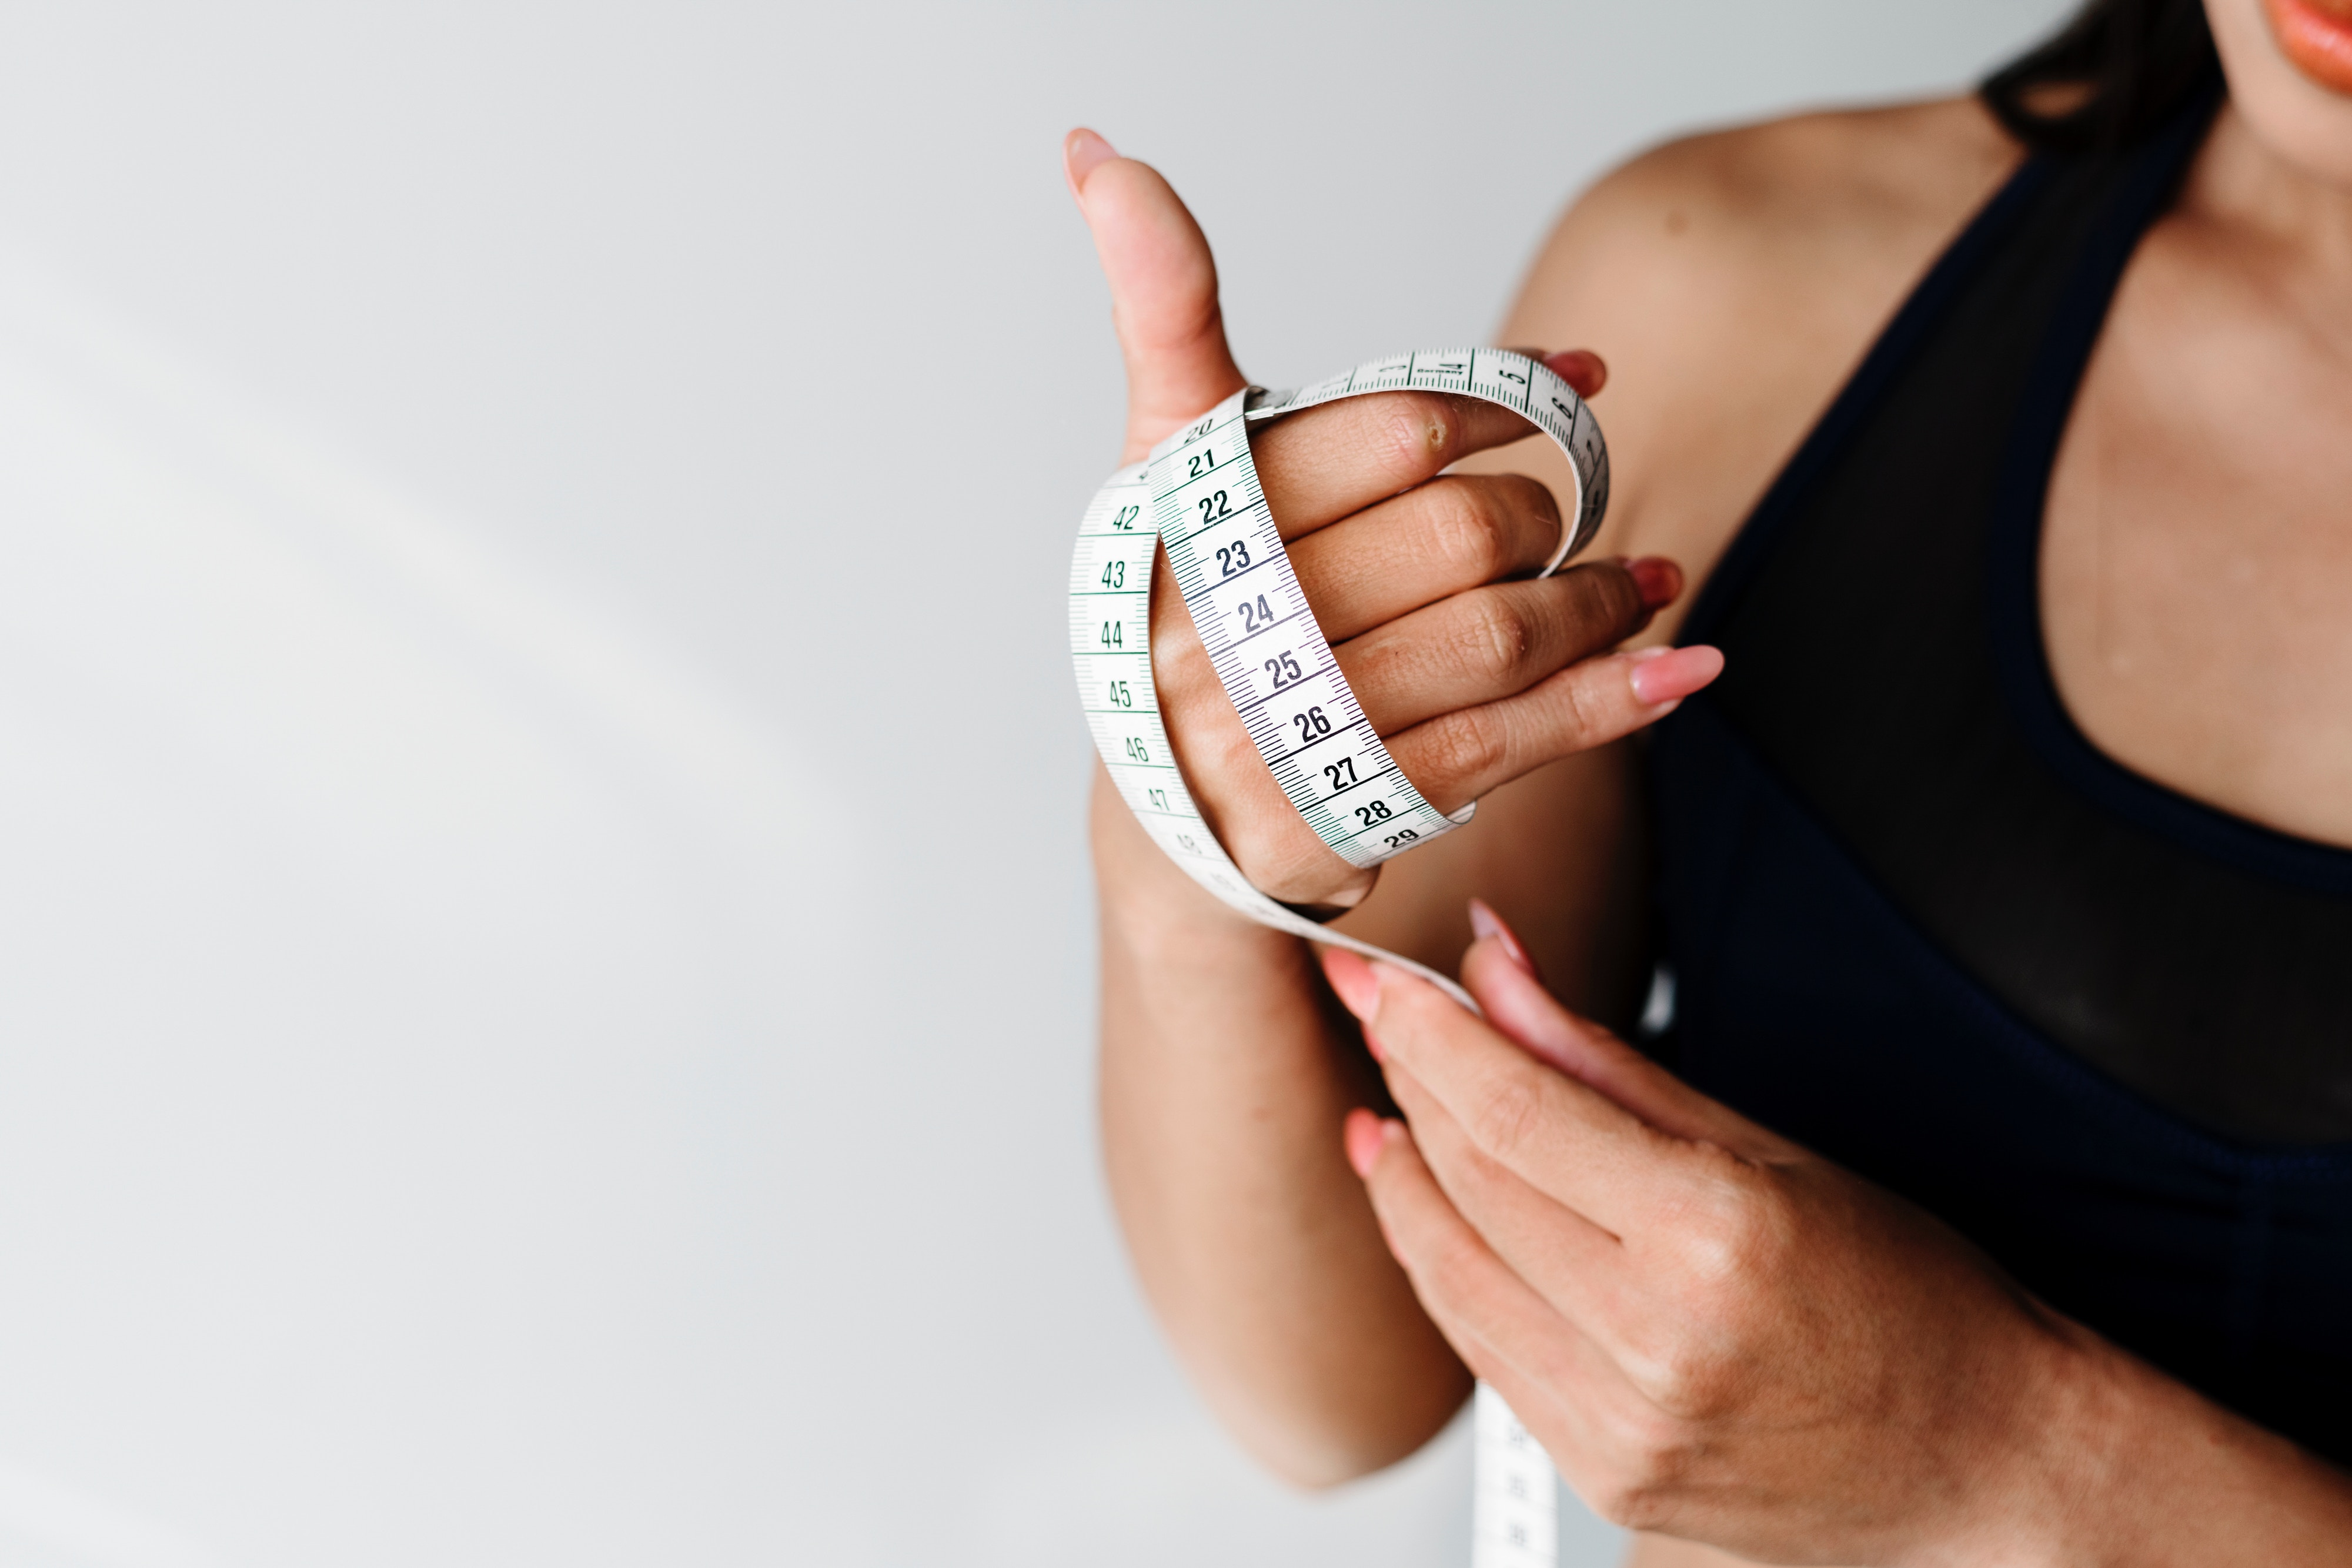 How to lose weight naturally with Chinese Medicine